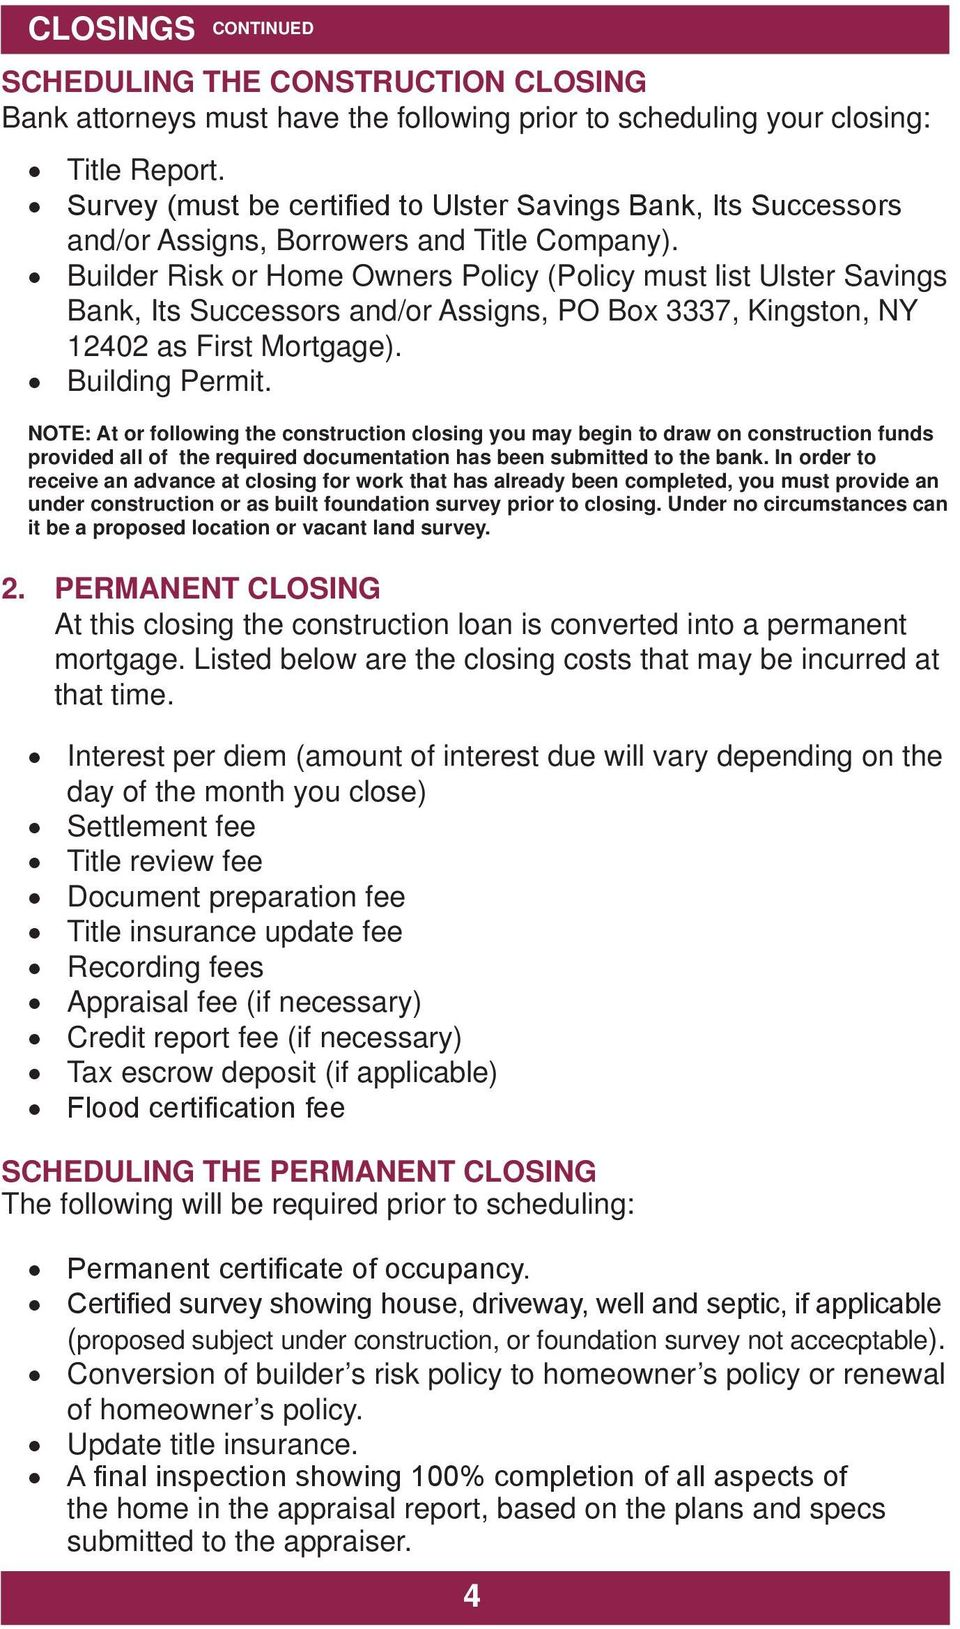 Builder Risk or Home Owners Policy (Policy must list Ulster Savings Bank, Its Successors and/or Assigns, PO Box 3337, Kingston, NY 12402 as First Mortgage). Building Permit.